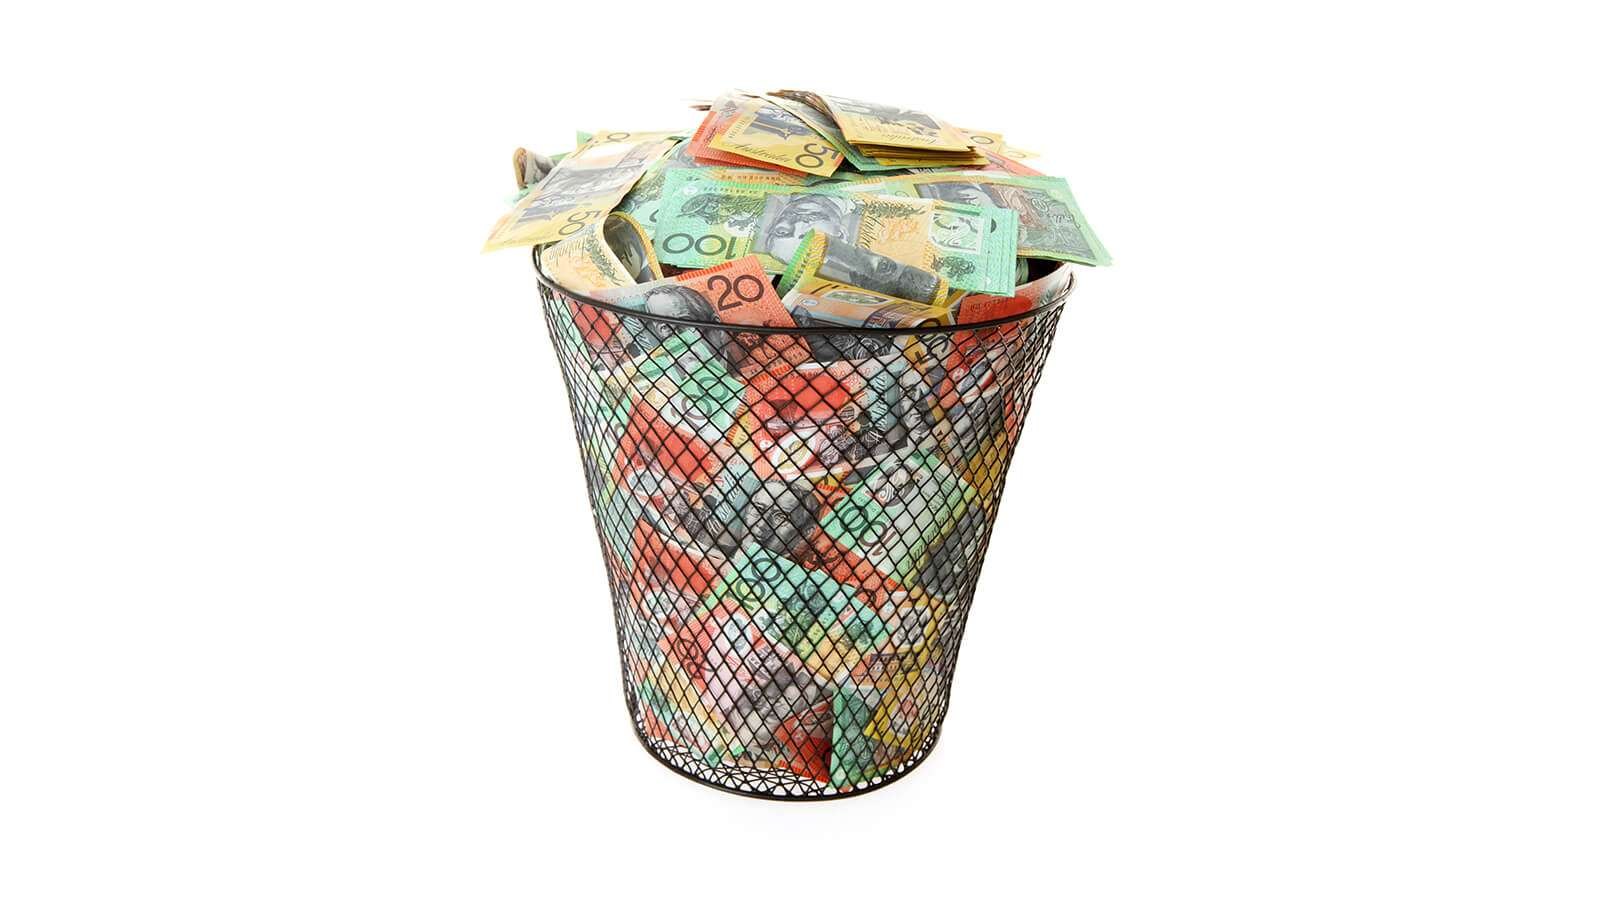 Wastepaper basket filled with Australian Money